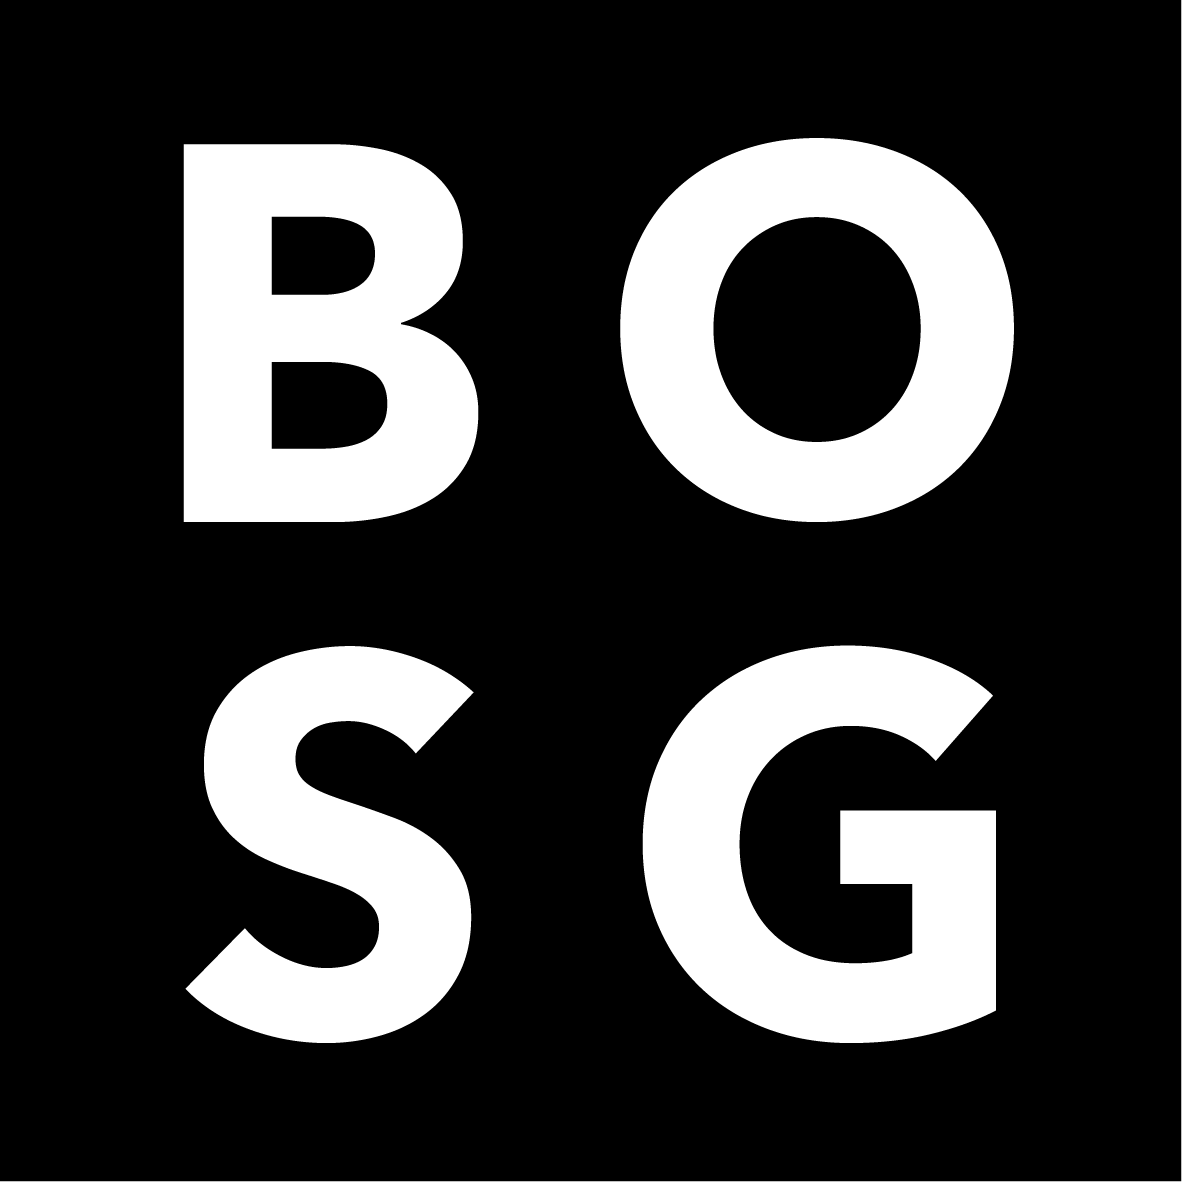 logo-bosg-neutral-black-transparent